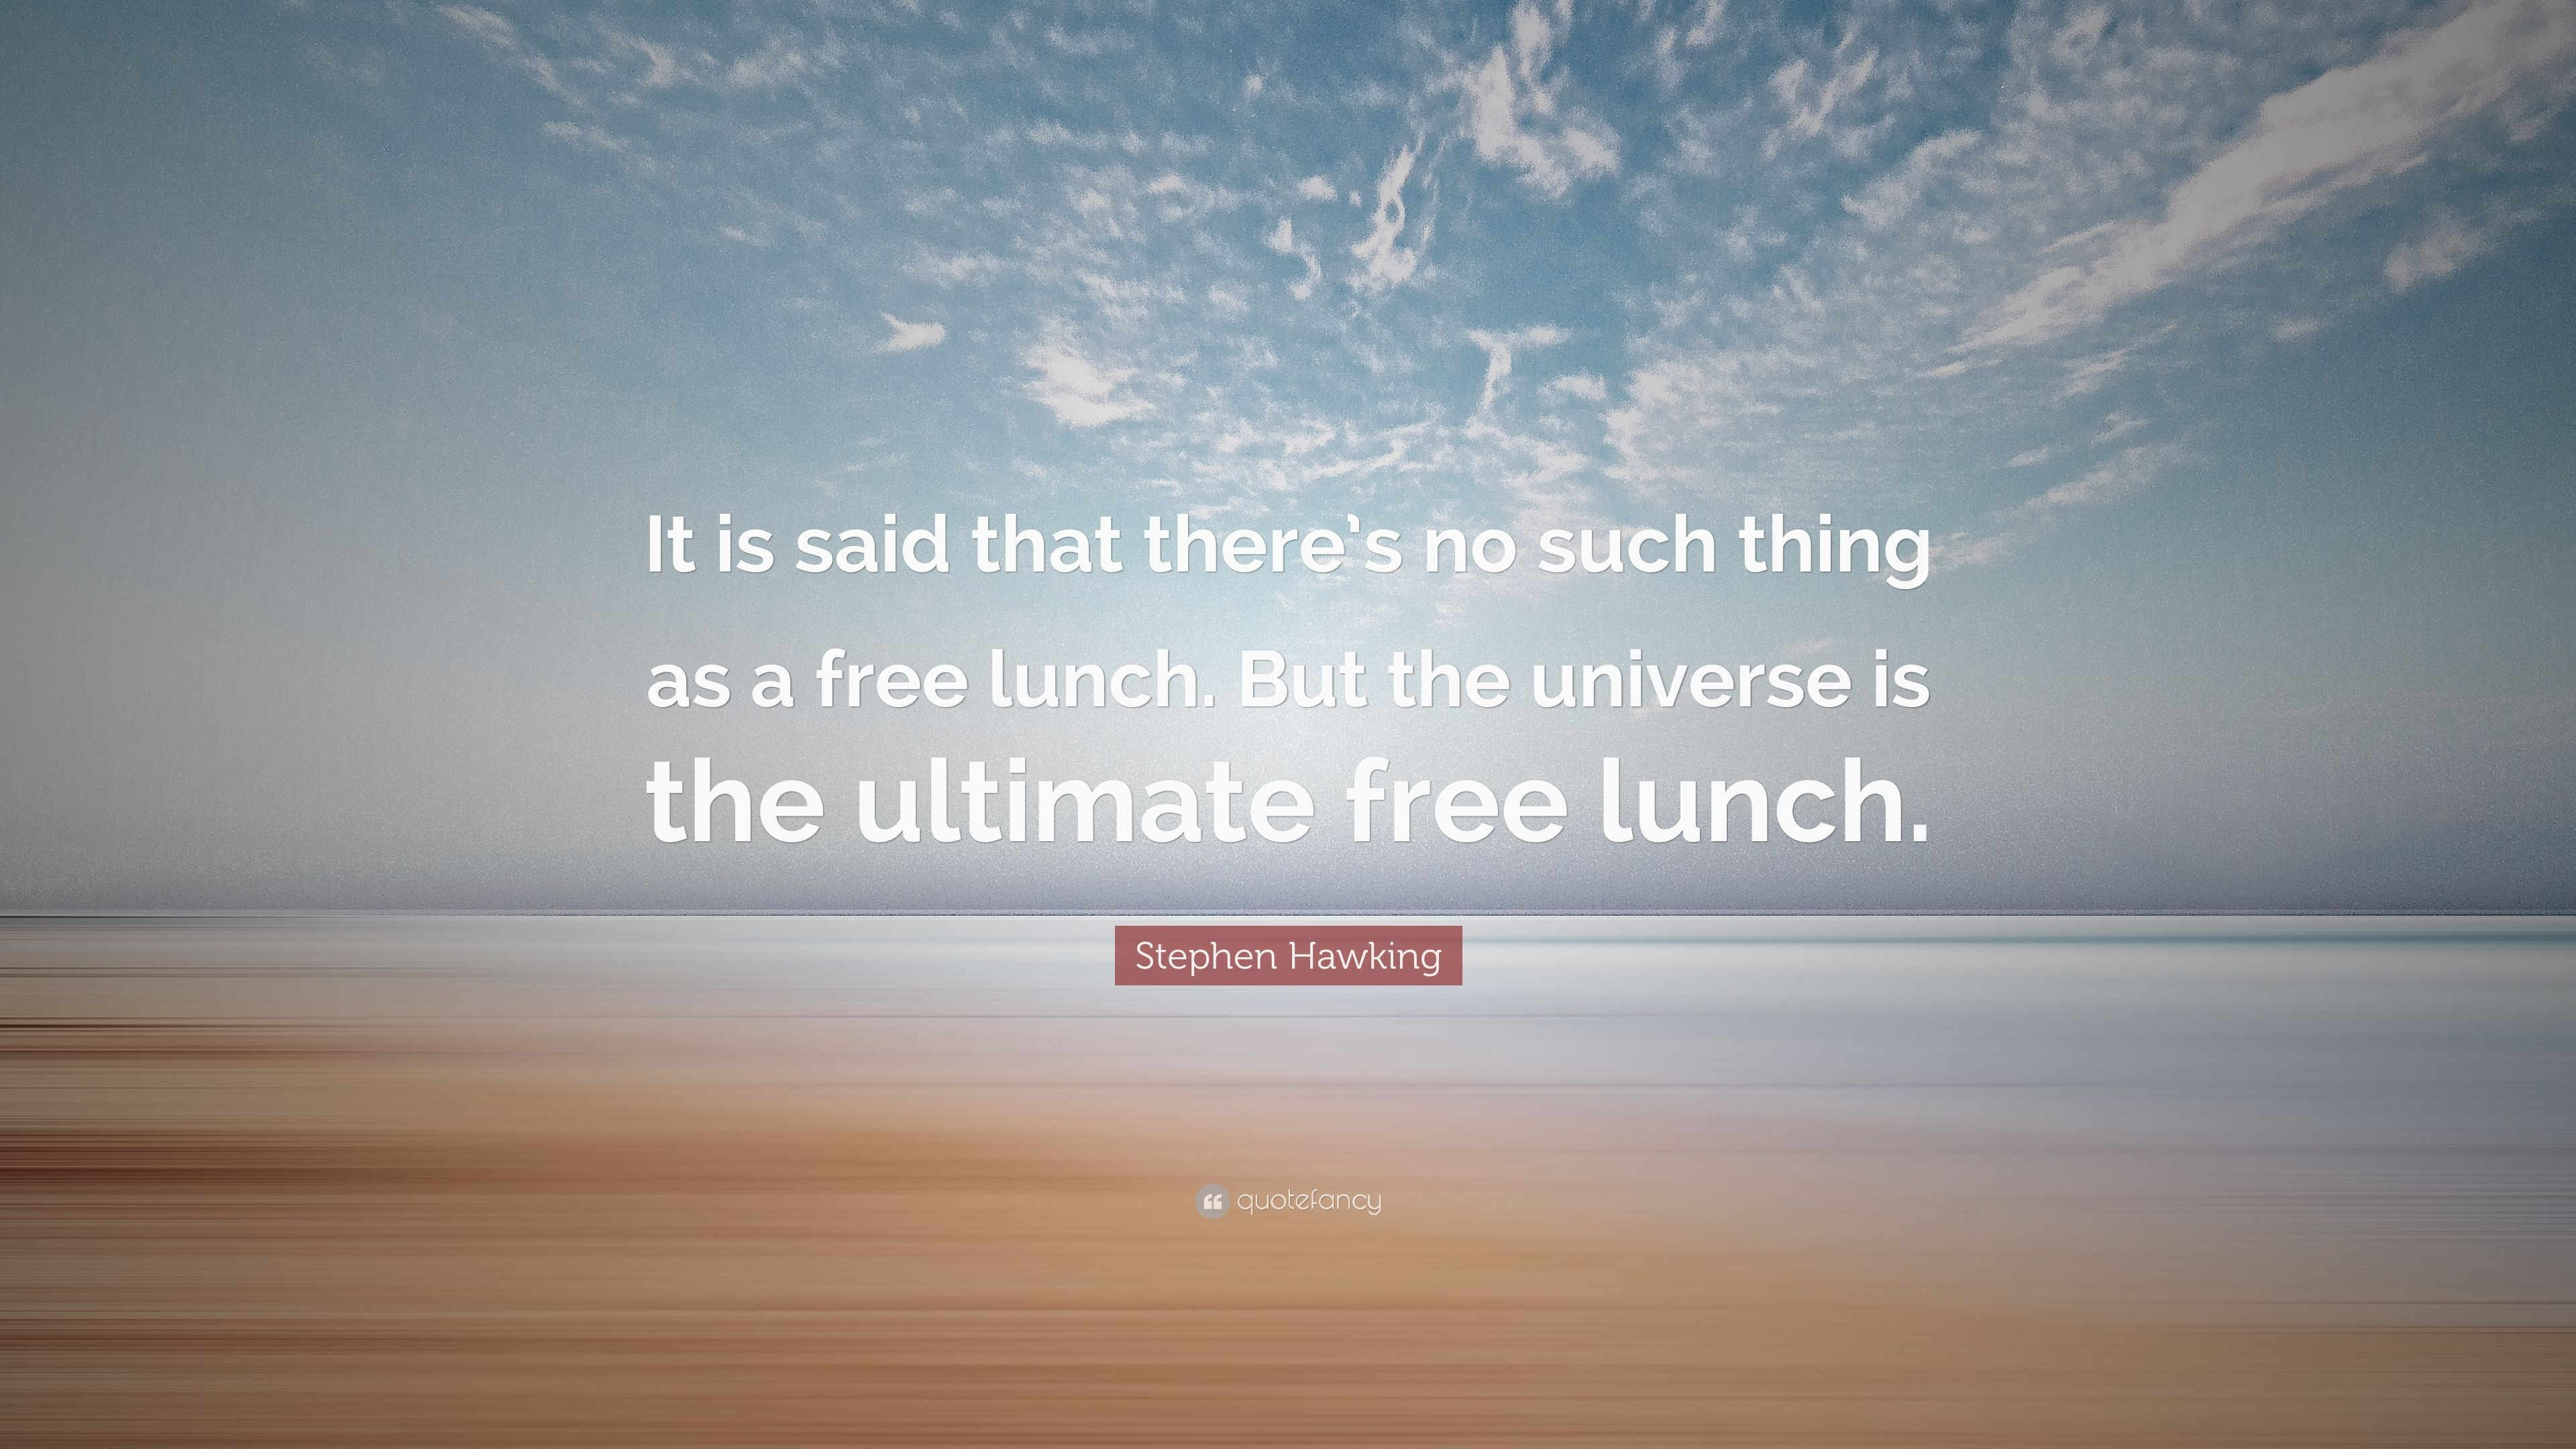 the universe is the ultimate free lunch